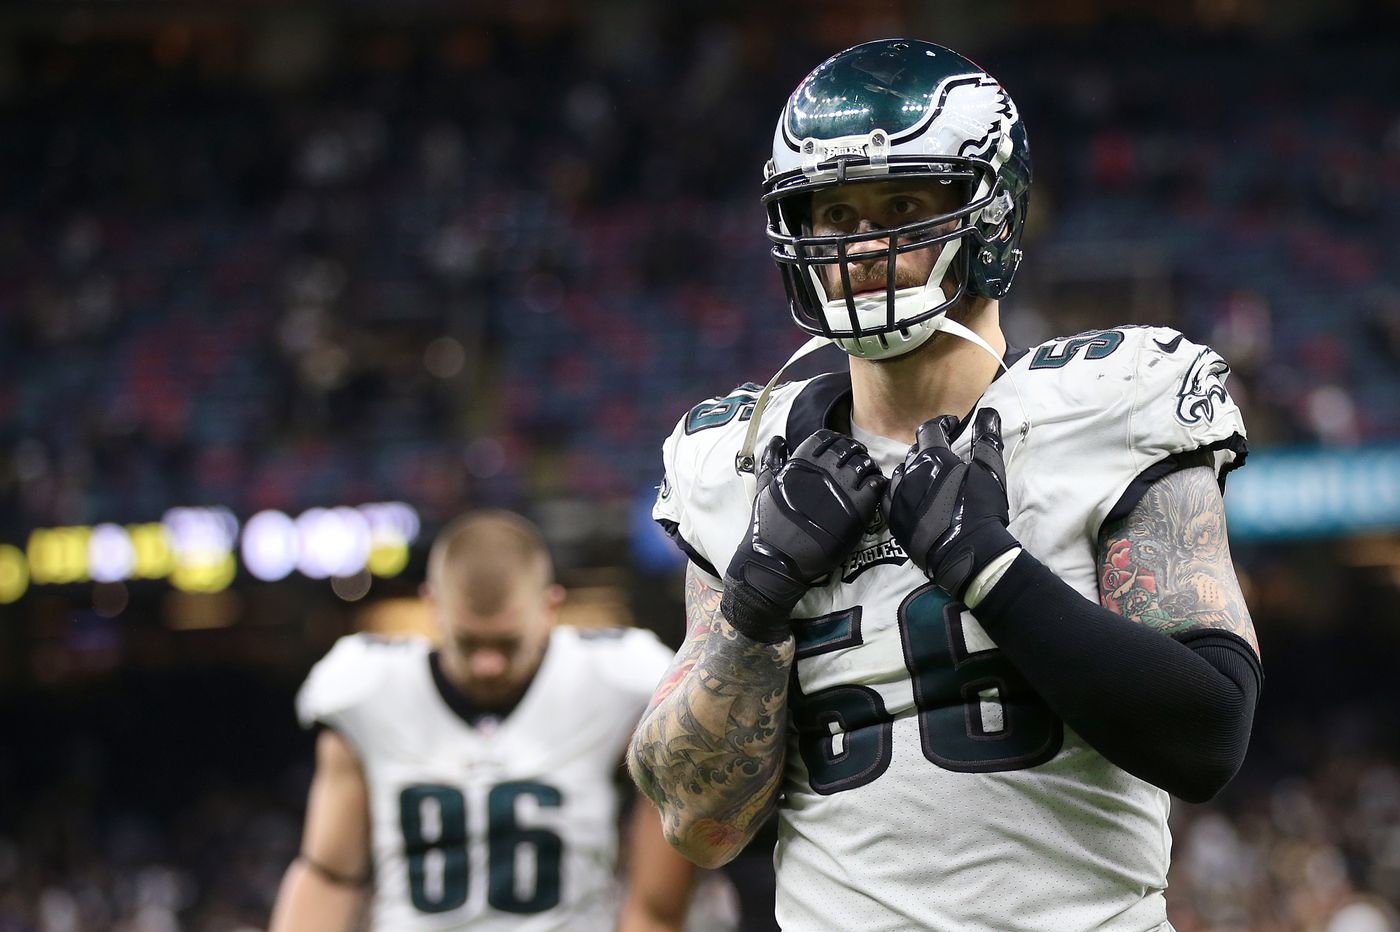 Eagles restructure Chris Long's contract, but he says he's made no decision about his future